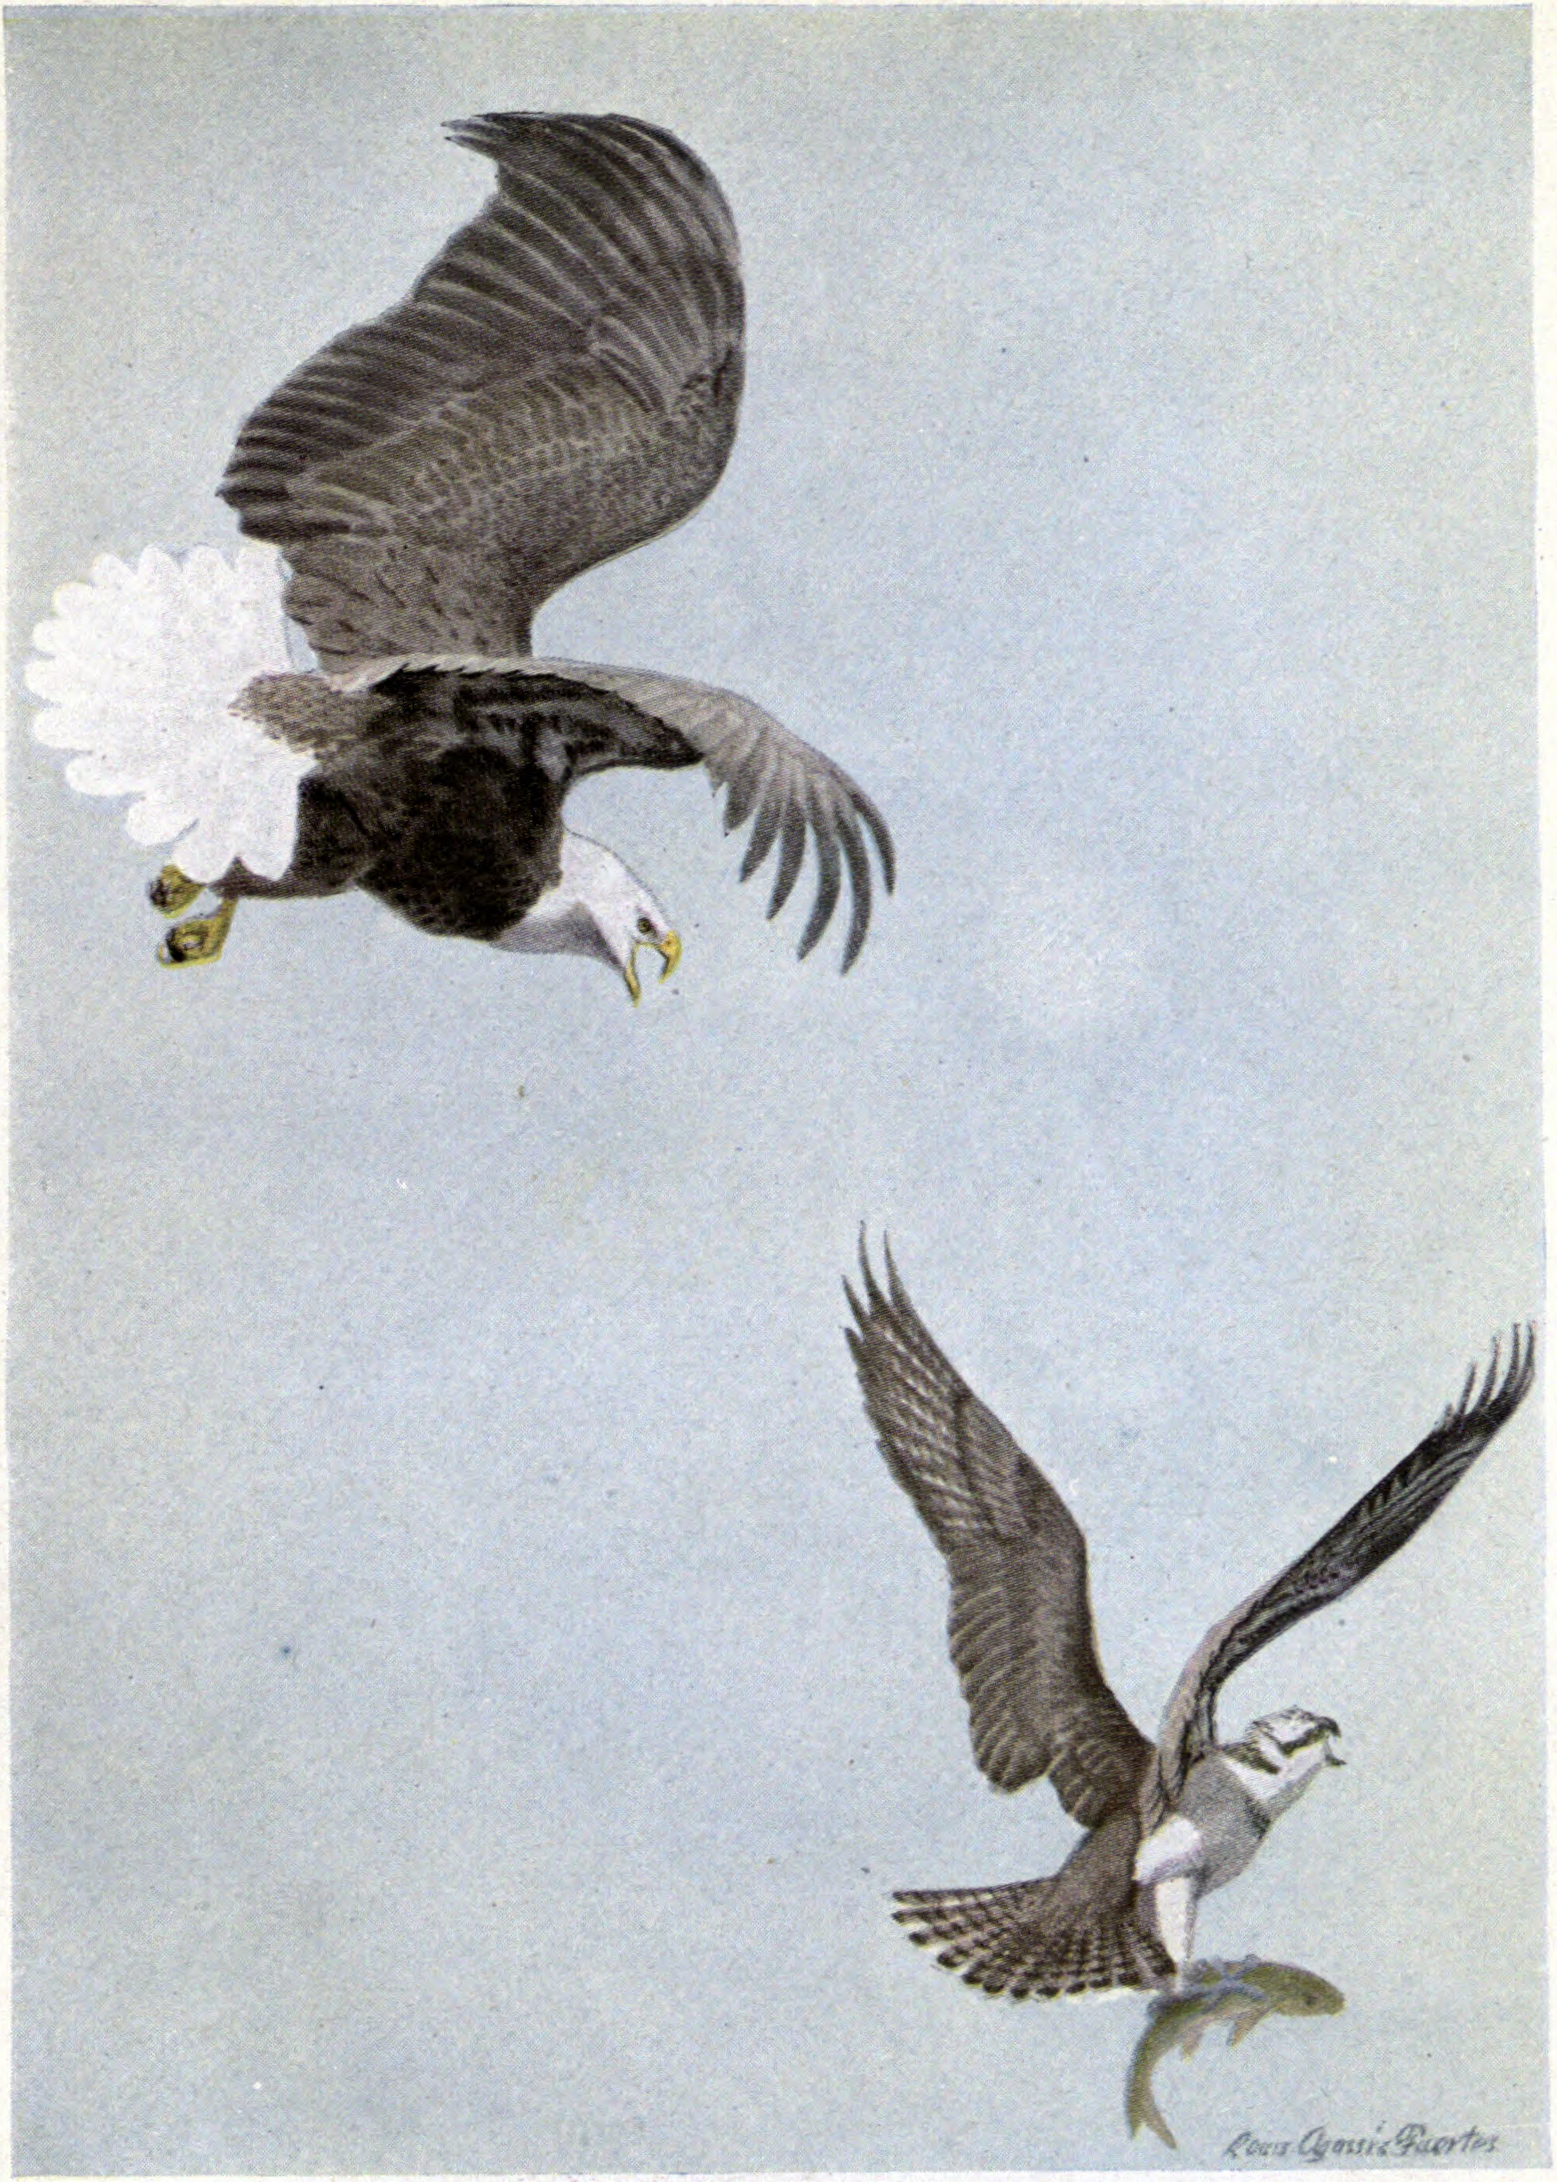 File:King Eagle, Plunger the Osprey.jpg - Wikimedia Commons